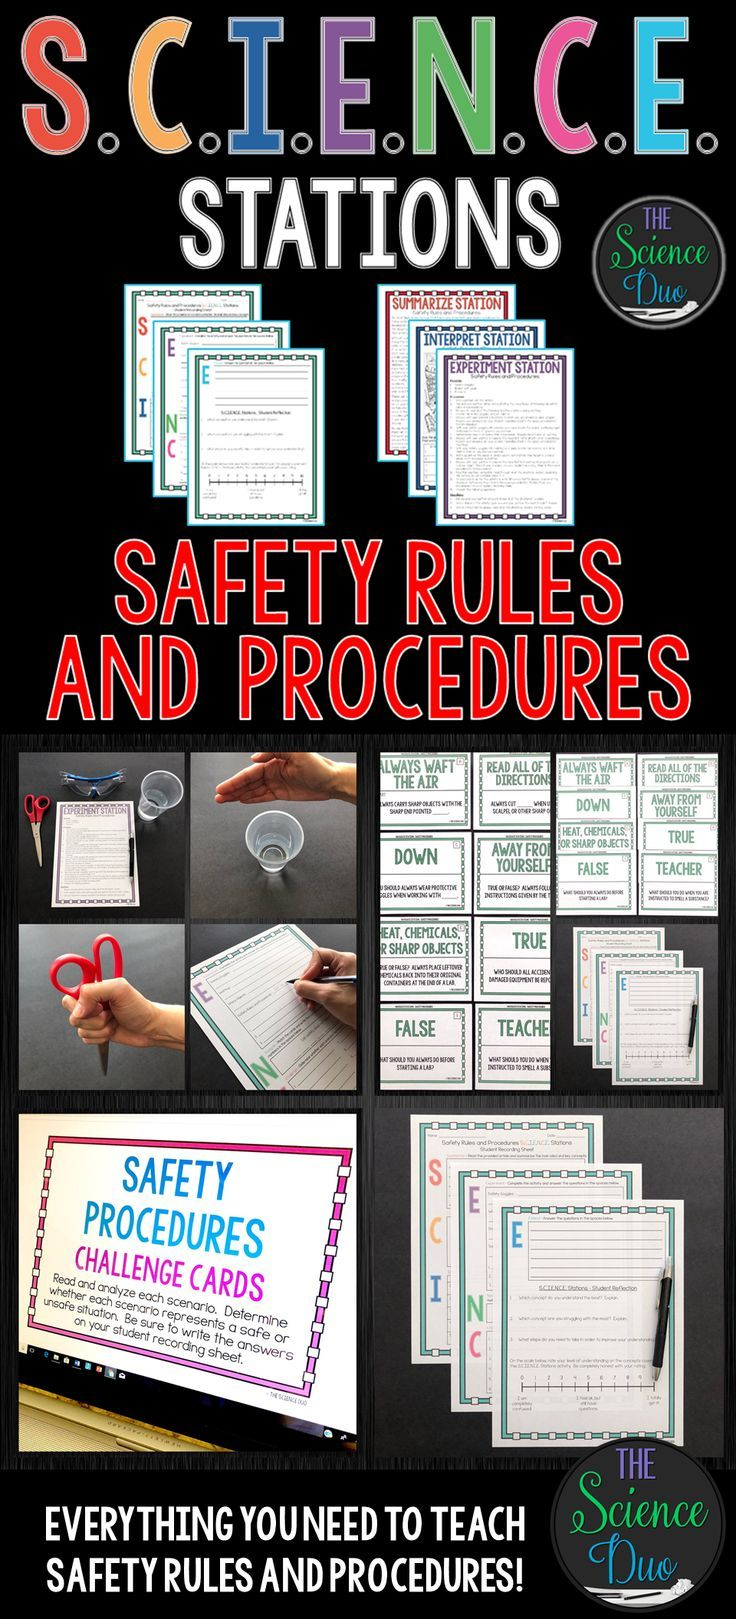 Lab Safety Rules And Procedures S C I E N C E Stations Distance Learning Scientific Method Science Lab Safety Science Safety